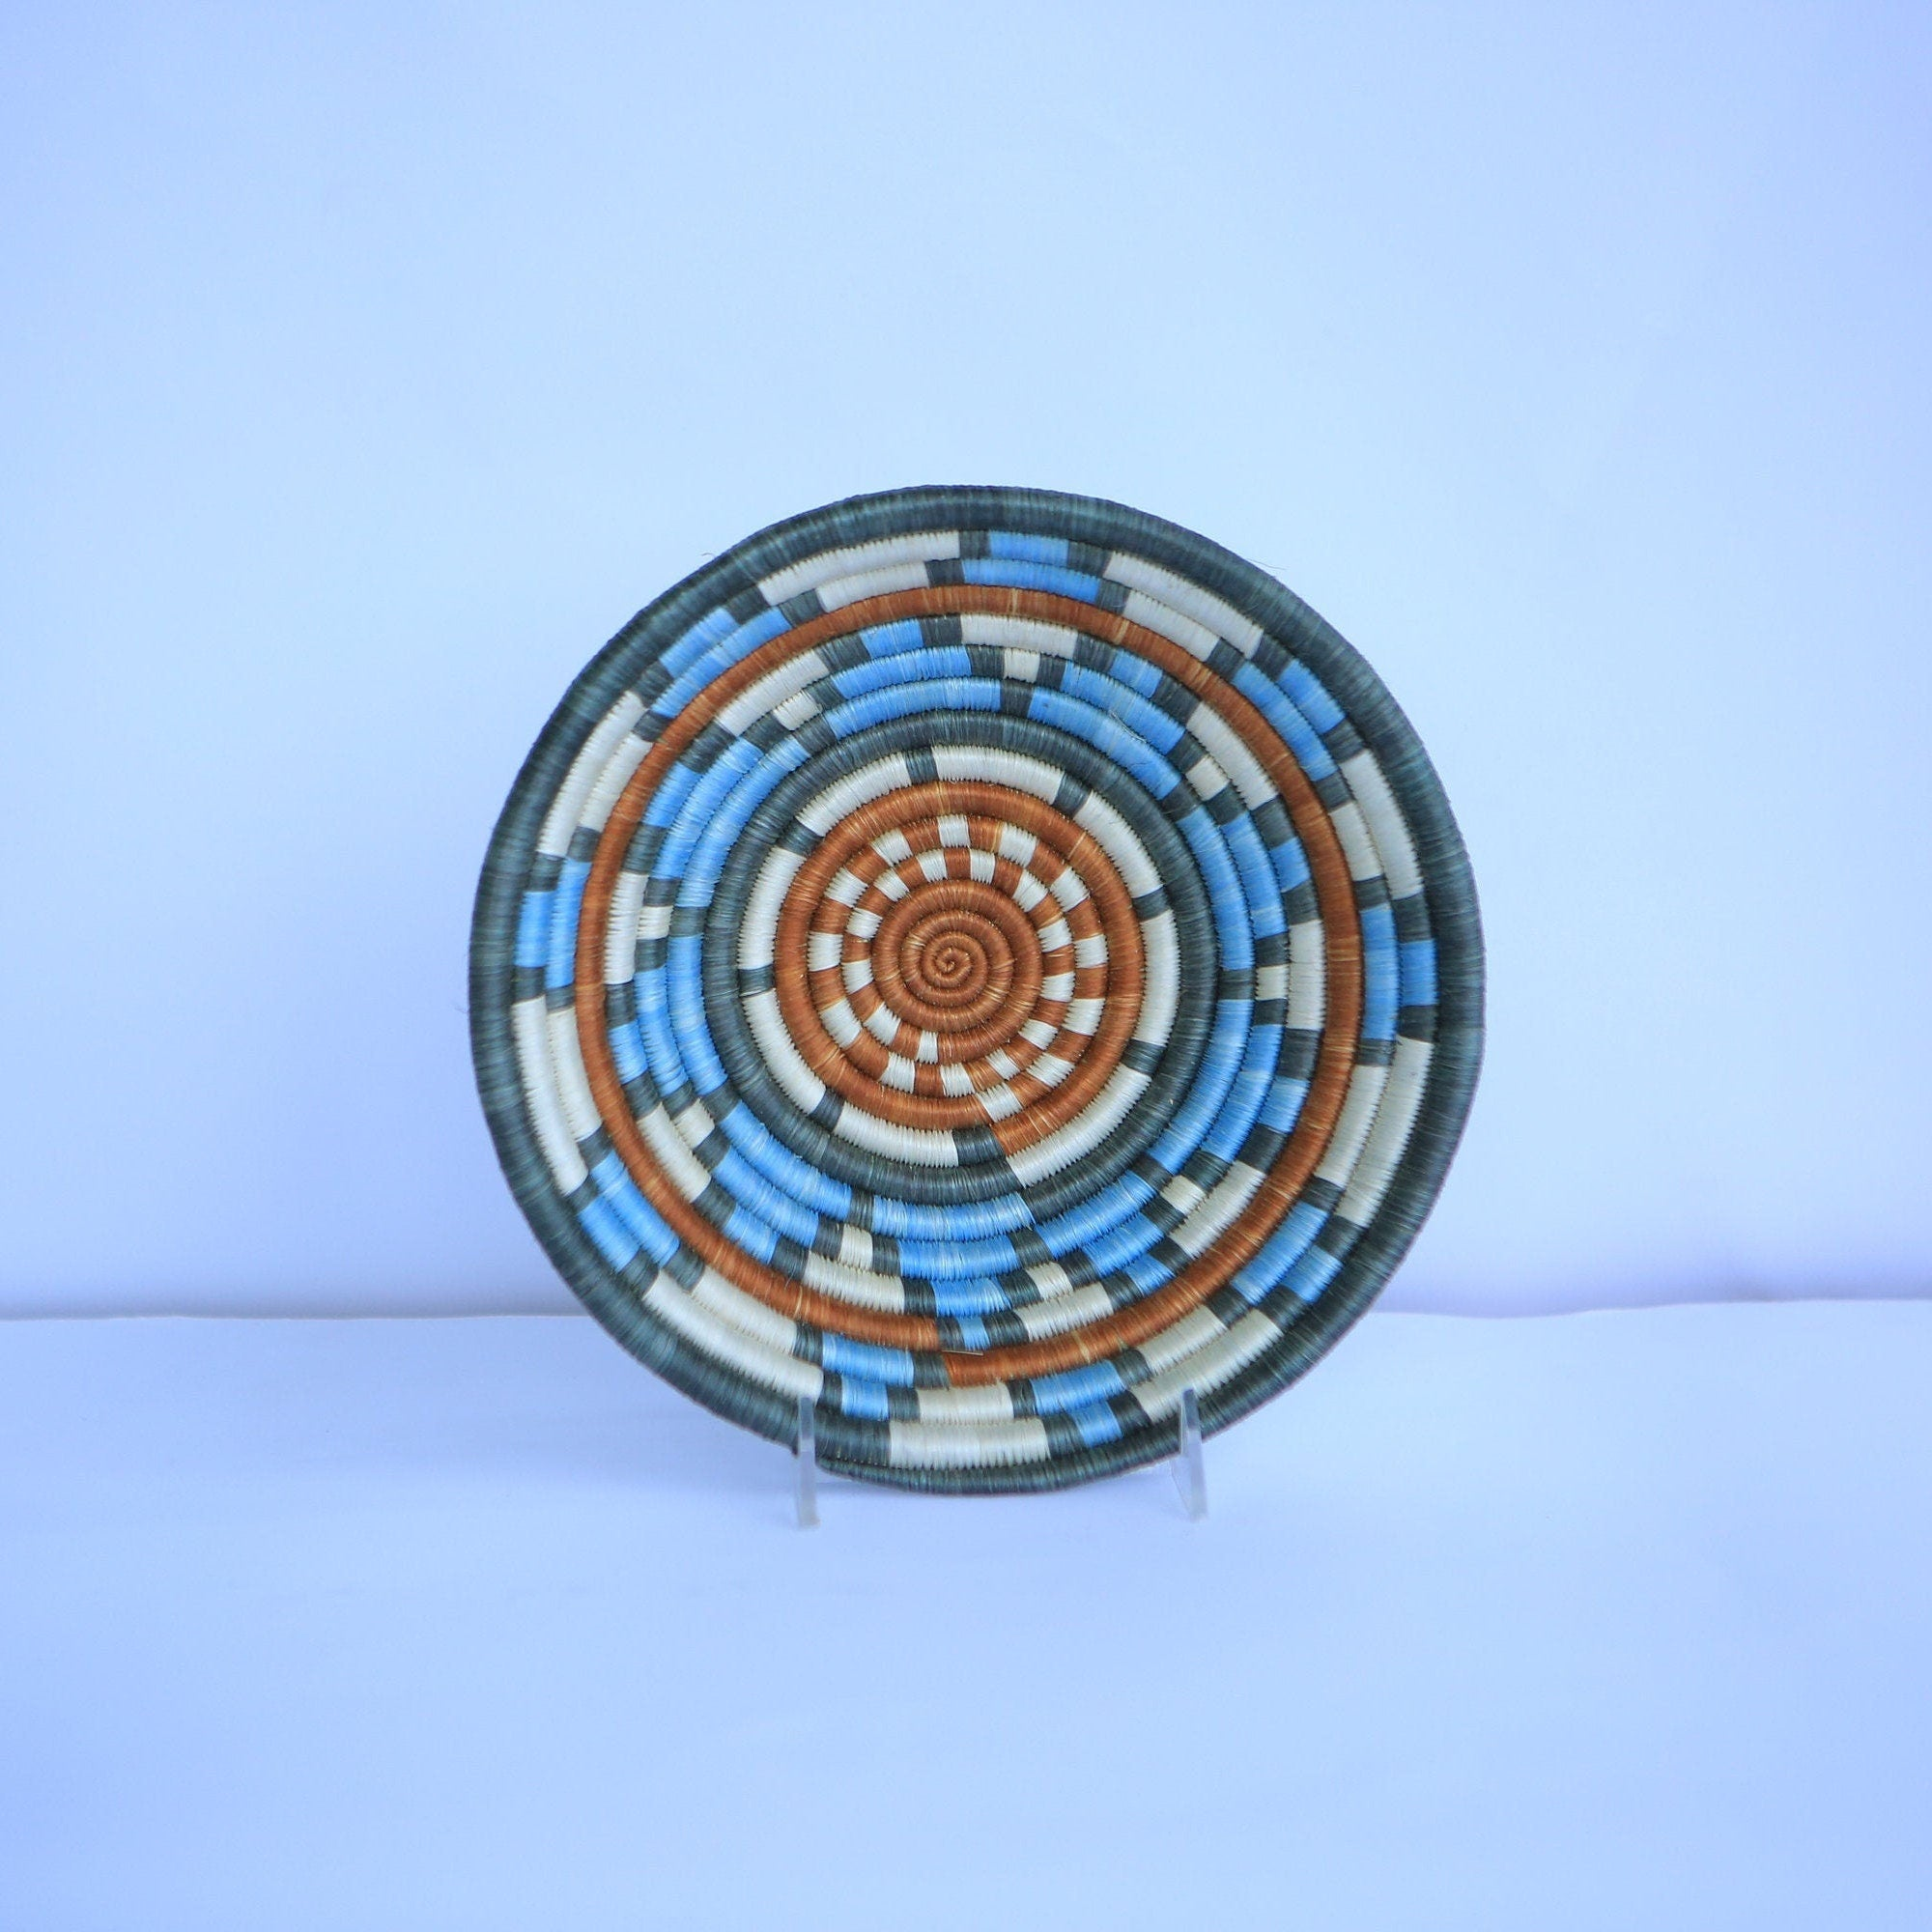 Shene African Wall Basket, Rwanda baskets, African Woven basket,  Sky blue, blue and brown - African Baskets , African Basket , Rwanda Baskets , Wall baskets Woven Basket